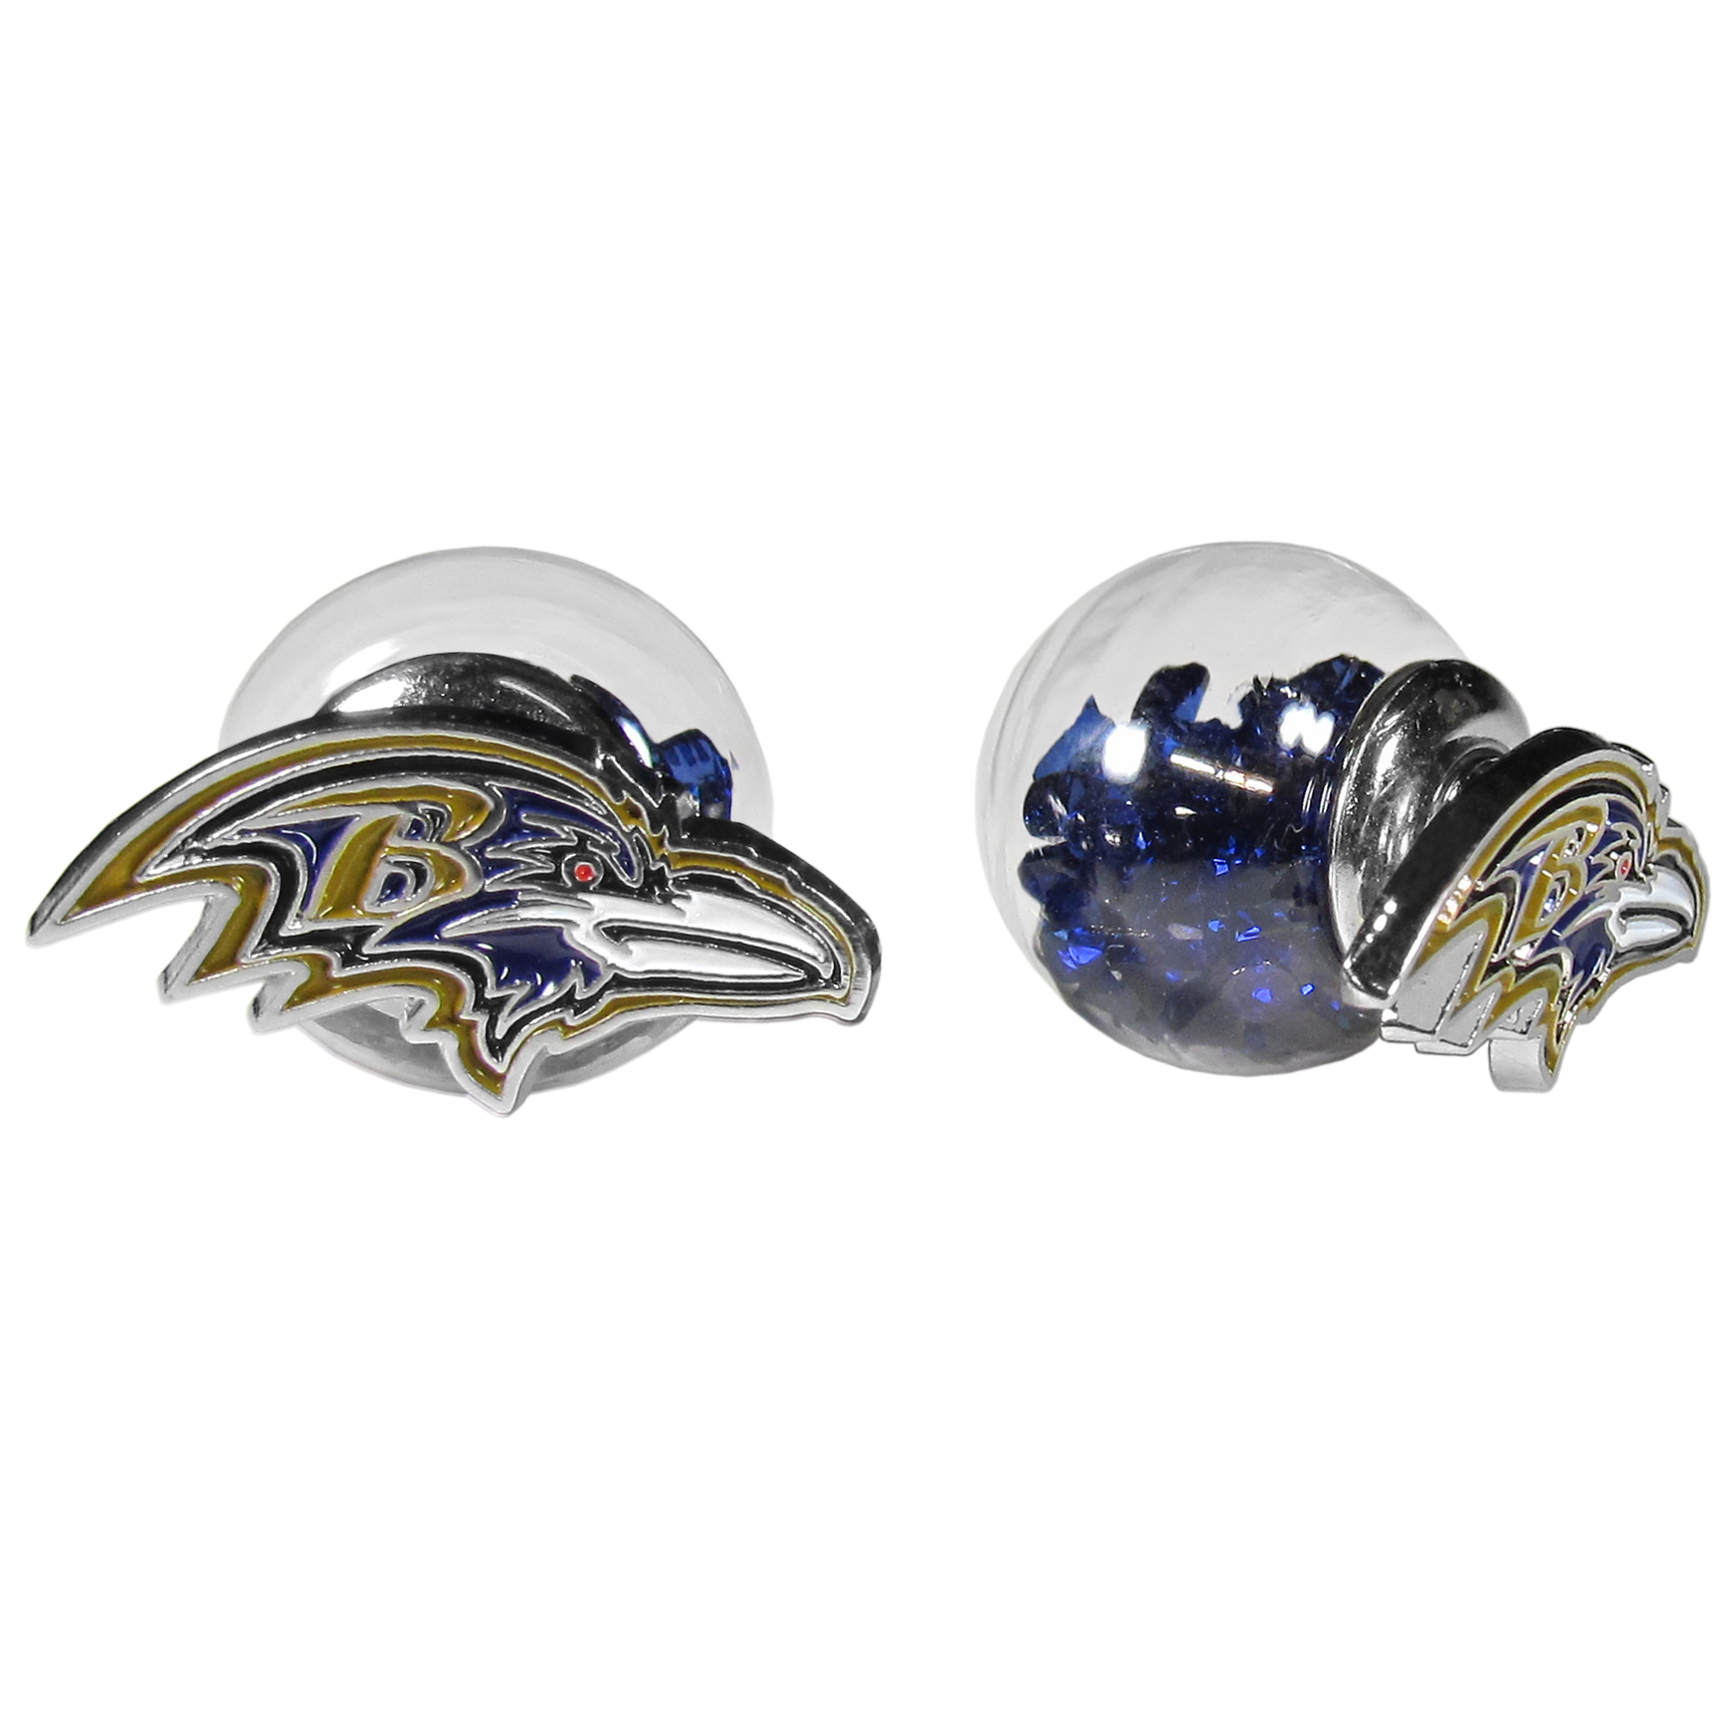 Baltimore Ravens Front/Back Earrings - Get in on one of the most popular trends in jewelry, front and back earrings! This must-have style is all of over the red carpets and we taken this contemporary look and paired it with your love of the Baltimore Ravens! The front of the earring is a sporty team logo and the back of these eye-catching earrings is a glass ball filled with colored crystal beads. This piece is perfect for a fashion-forward fan, with bold taste and trend-setting style.